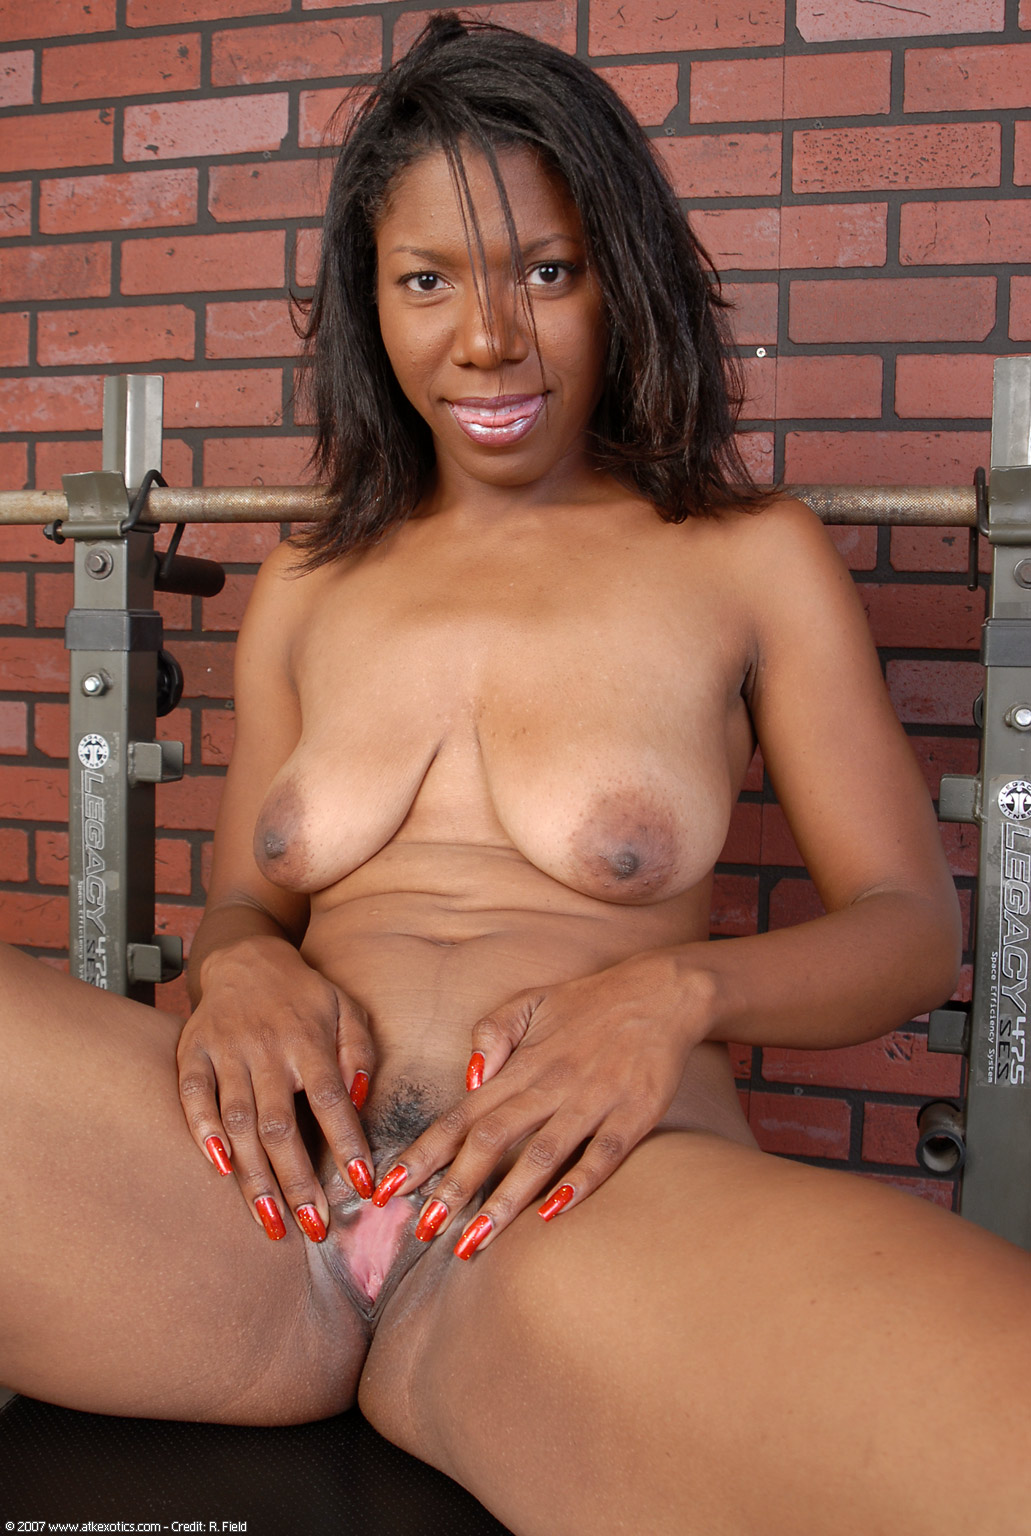 Have hit atk exotics ebony milf remarkable